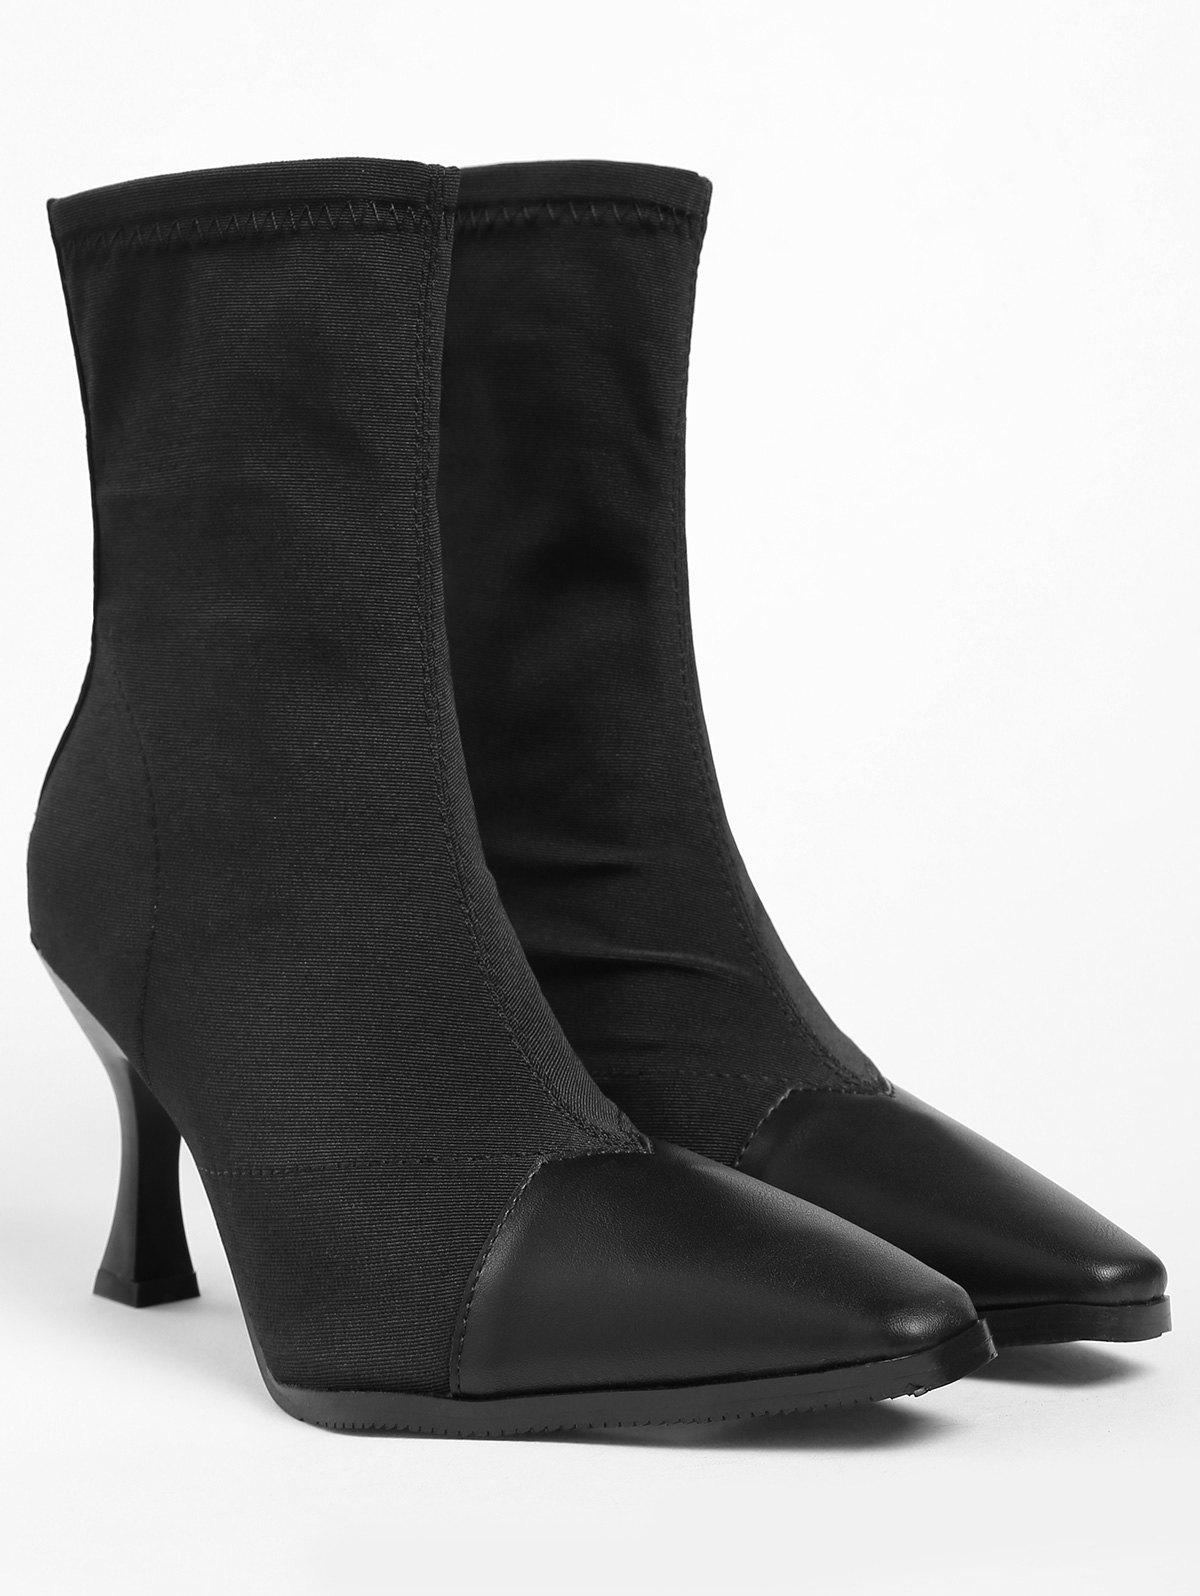 Pointed Toe Cap High Heel Ankle Boots - BLACK 37